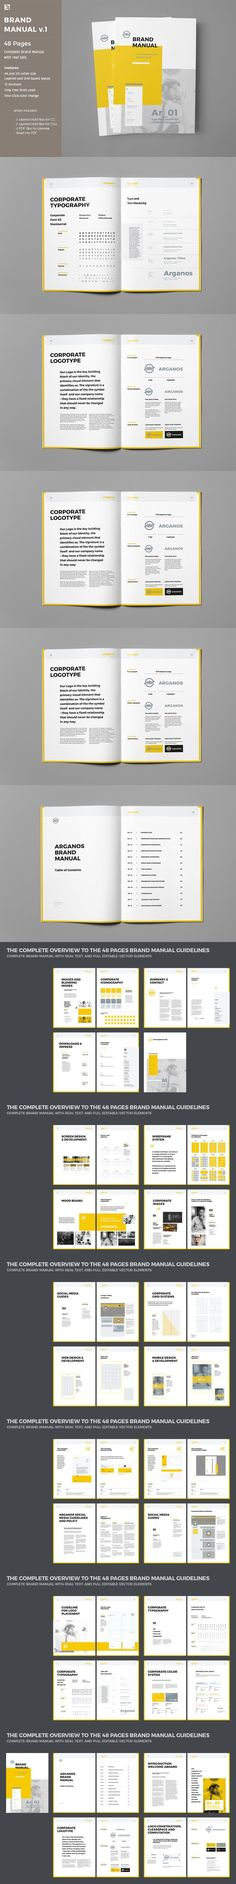 Brand Manual Brochure 40 Pages Template INDD Brochure Templates - business manual templates